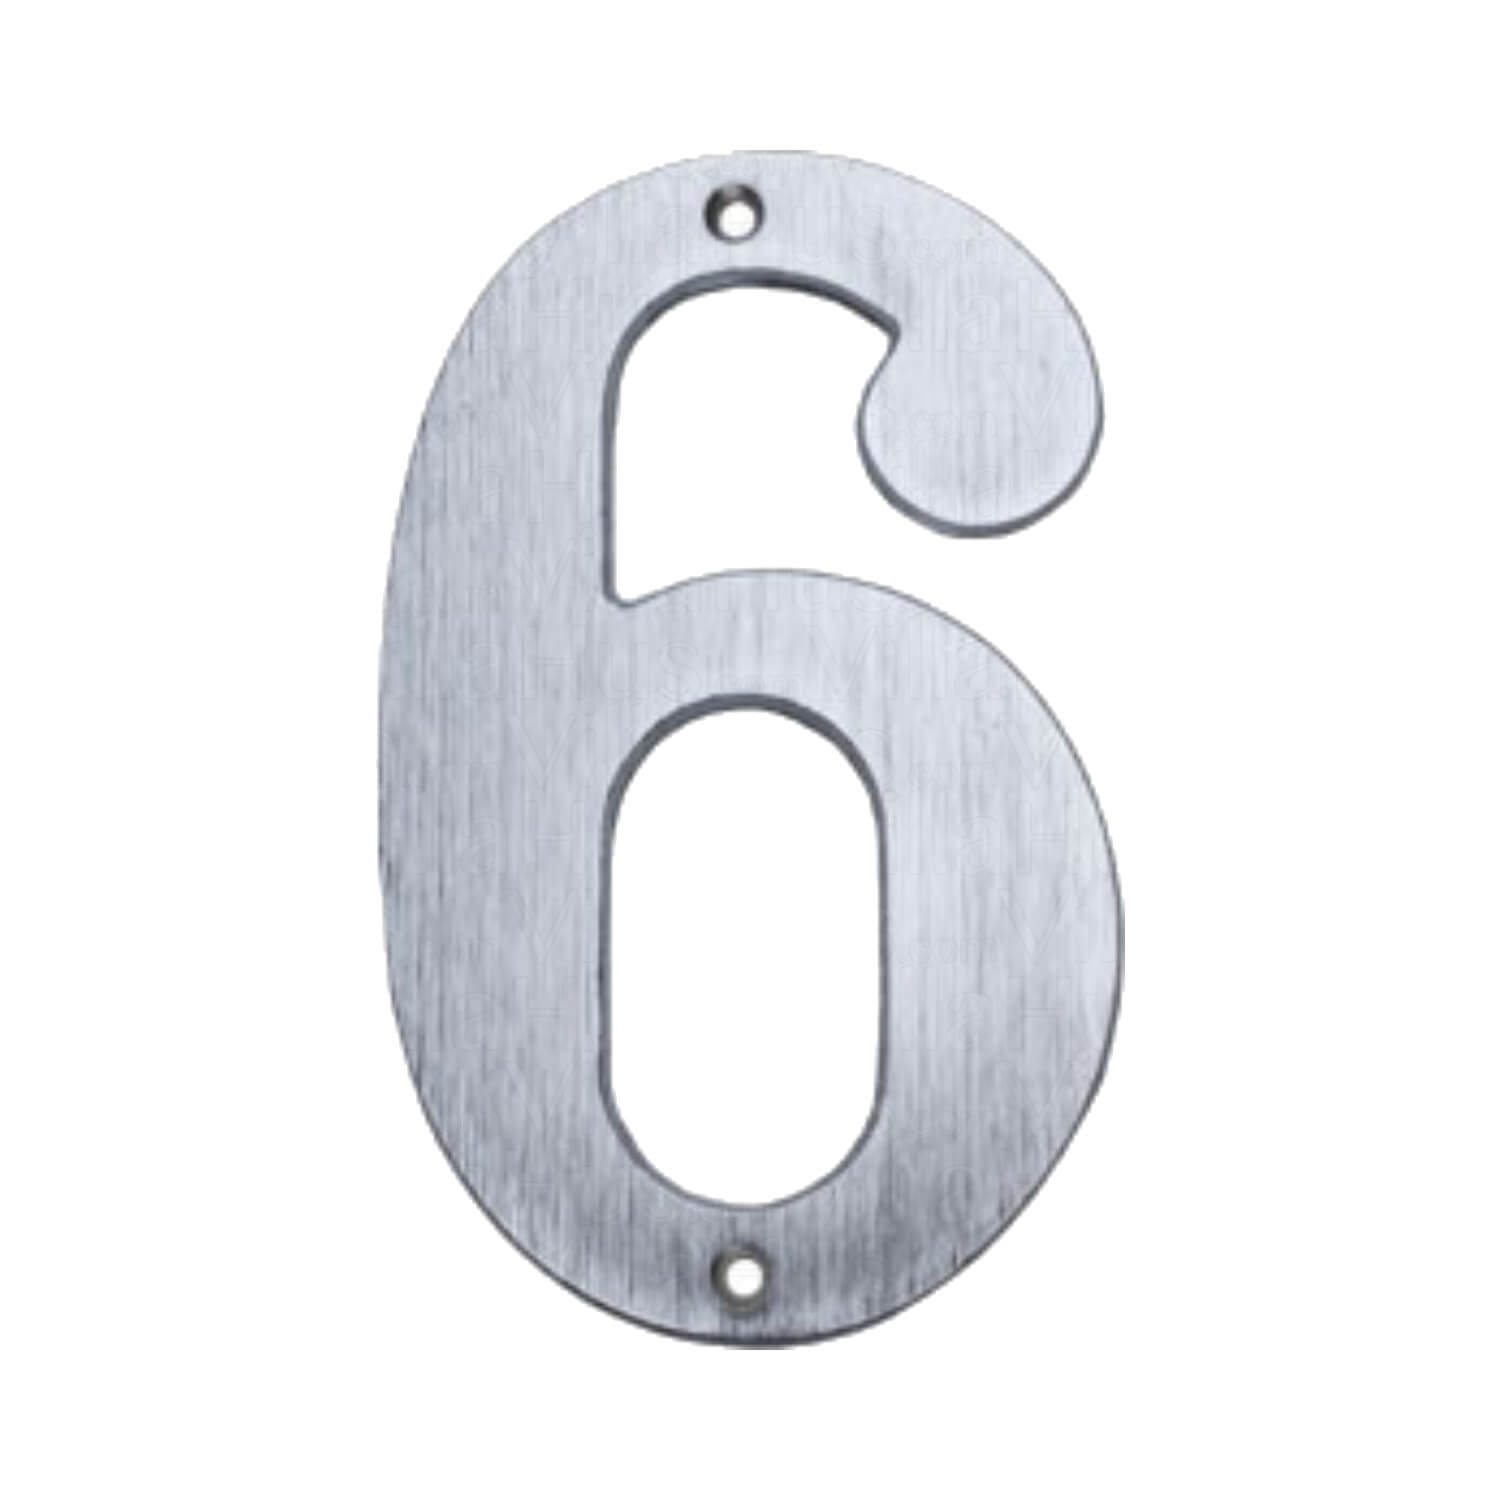 house numbers matte nickel 140 mm model 572 house